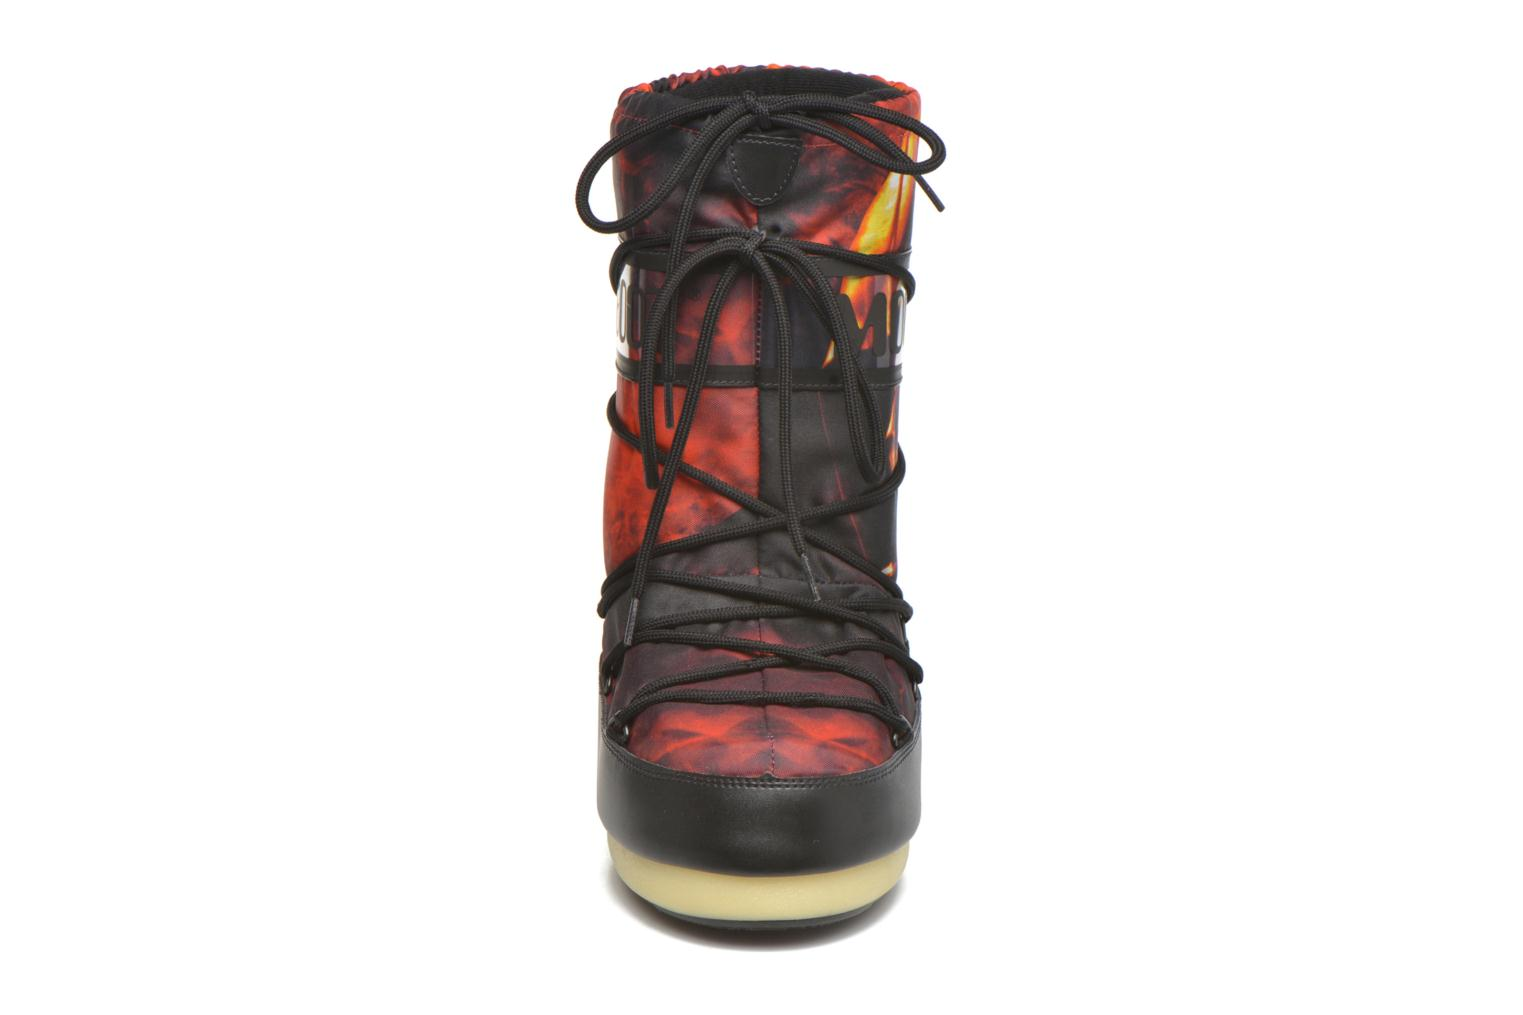 Moon Boot Star wars Jr Fire Black/red